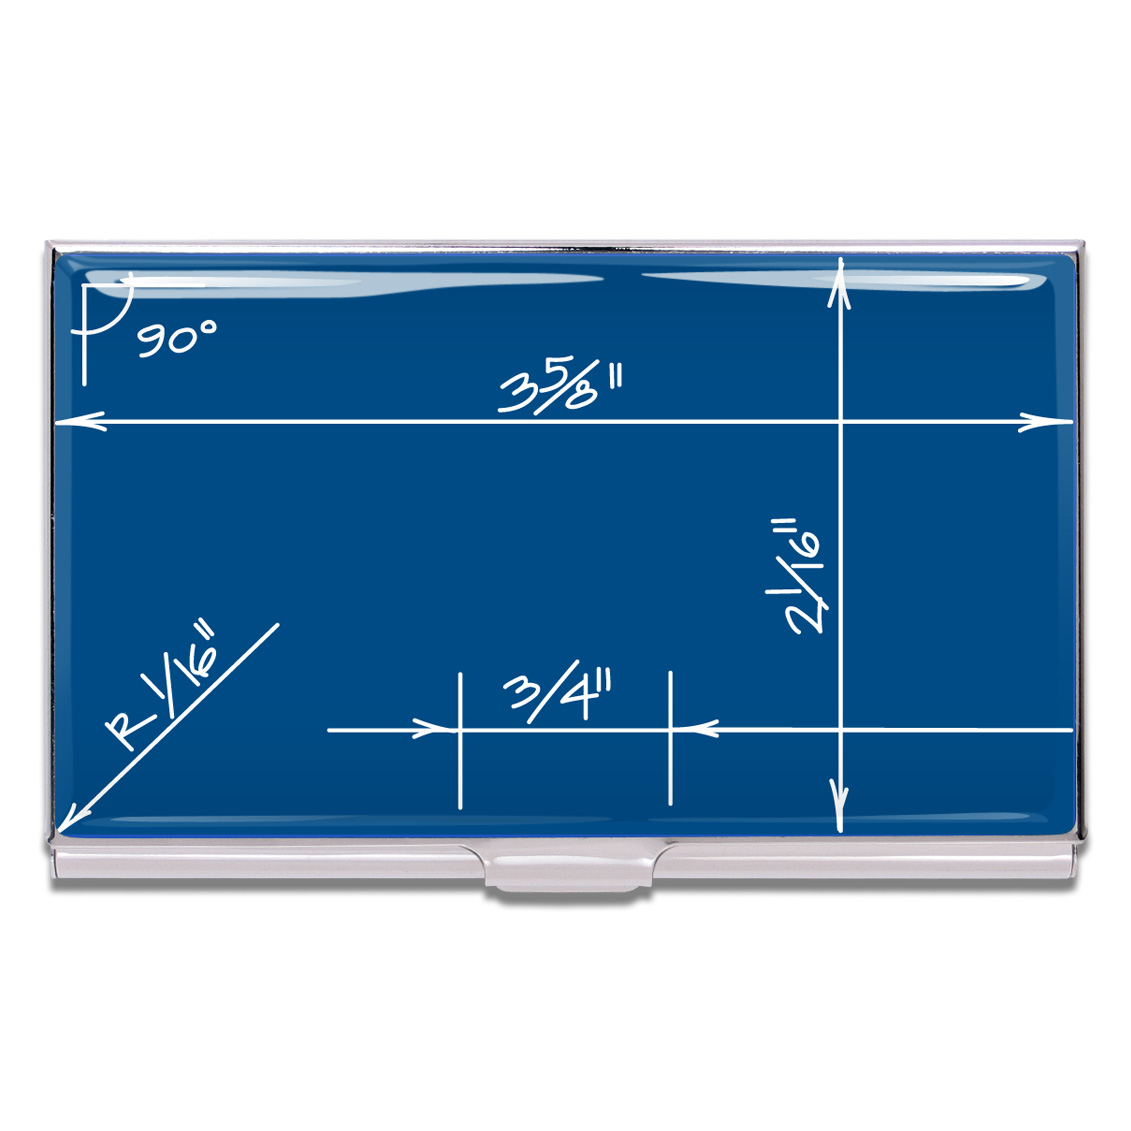 Shop blueprint business card case pre order by constantin boym blueprint business card case pre order colourmoves